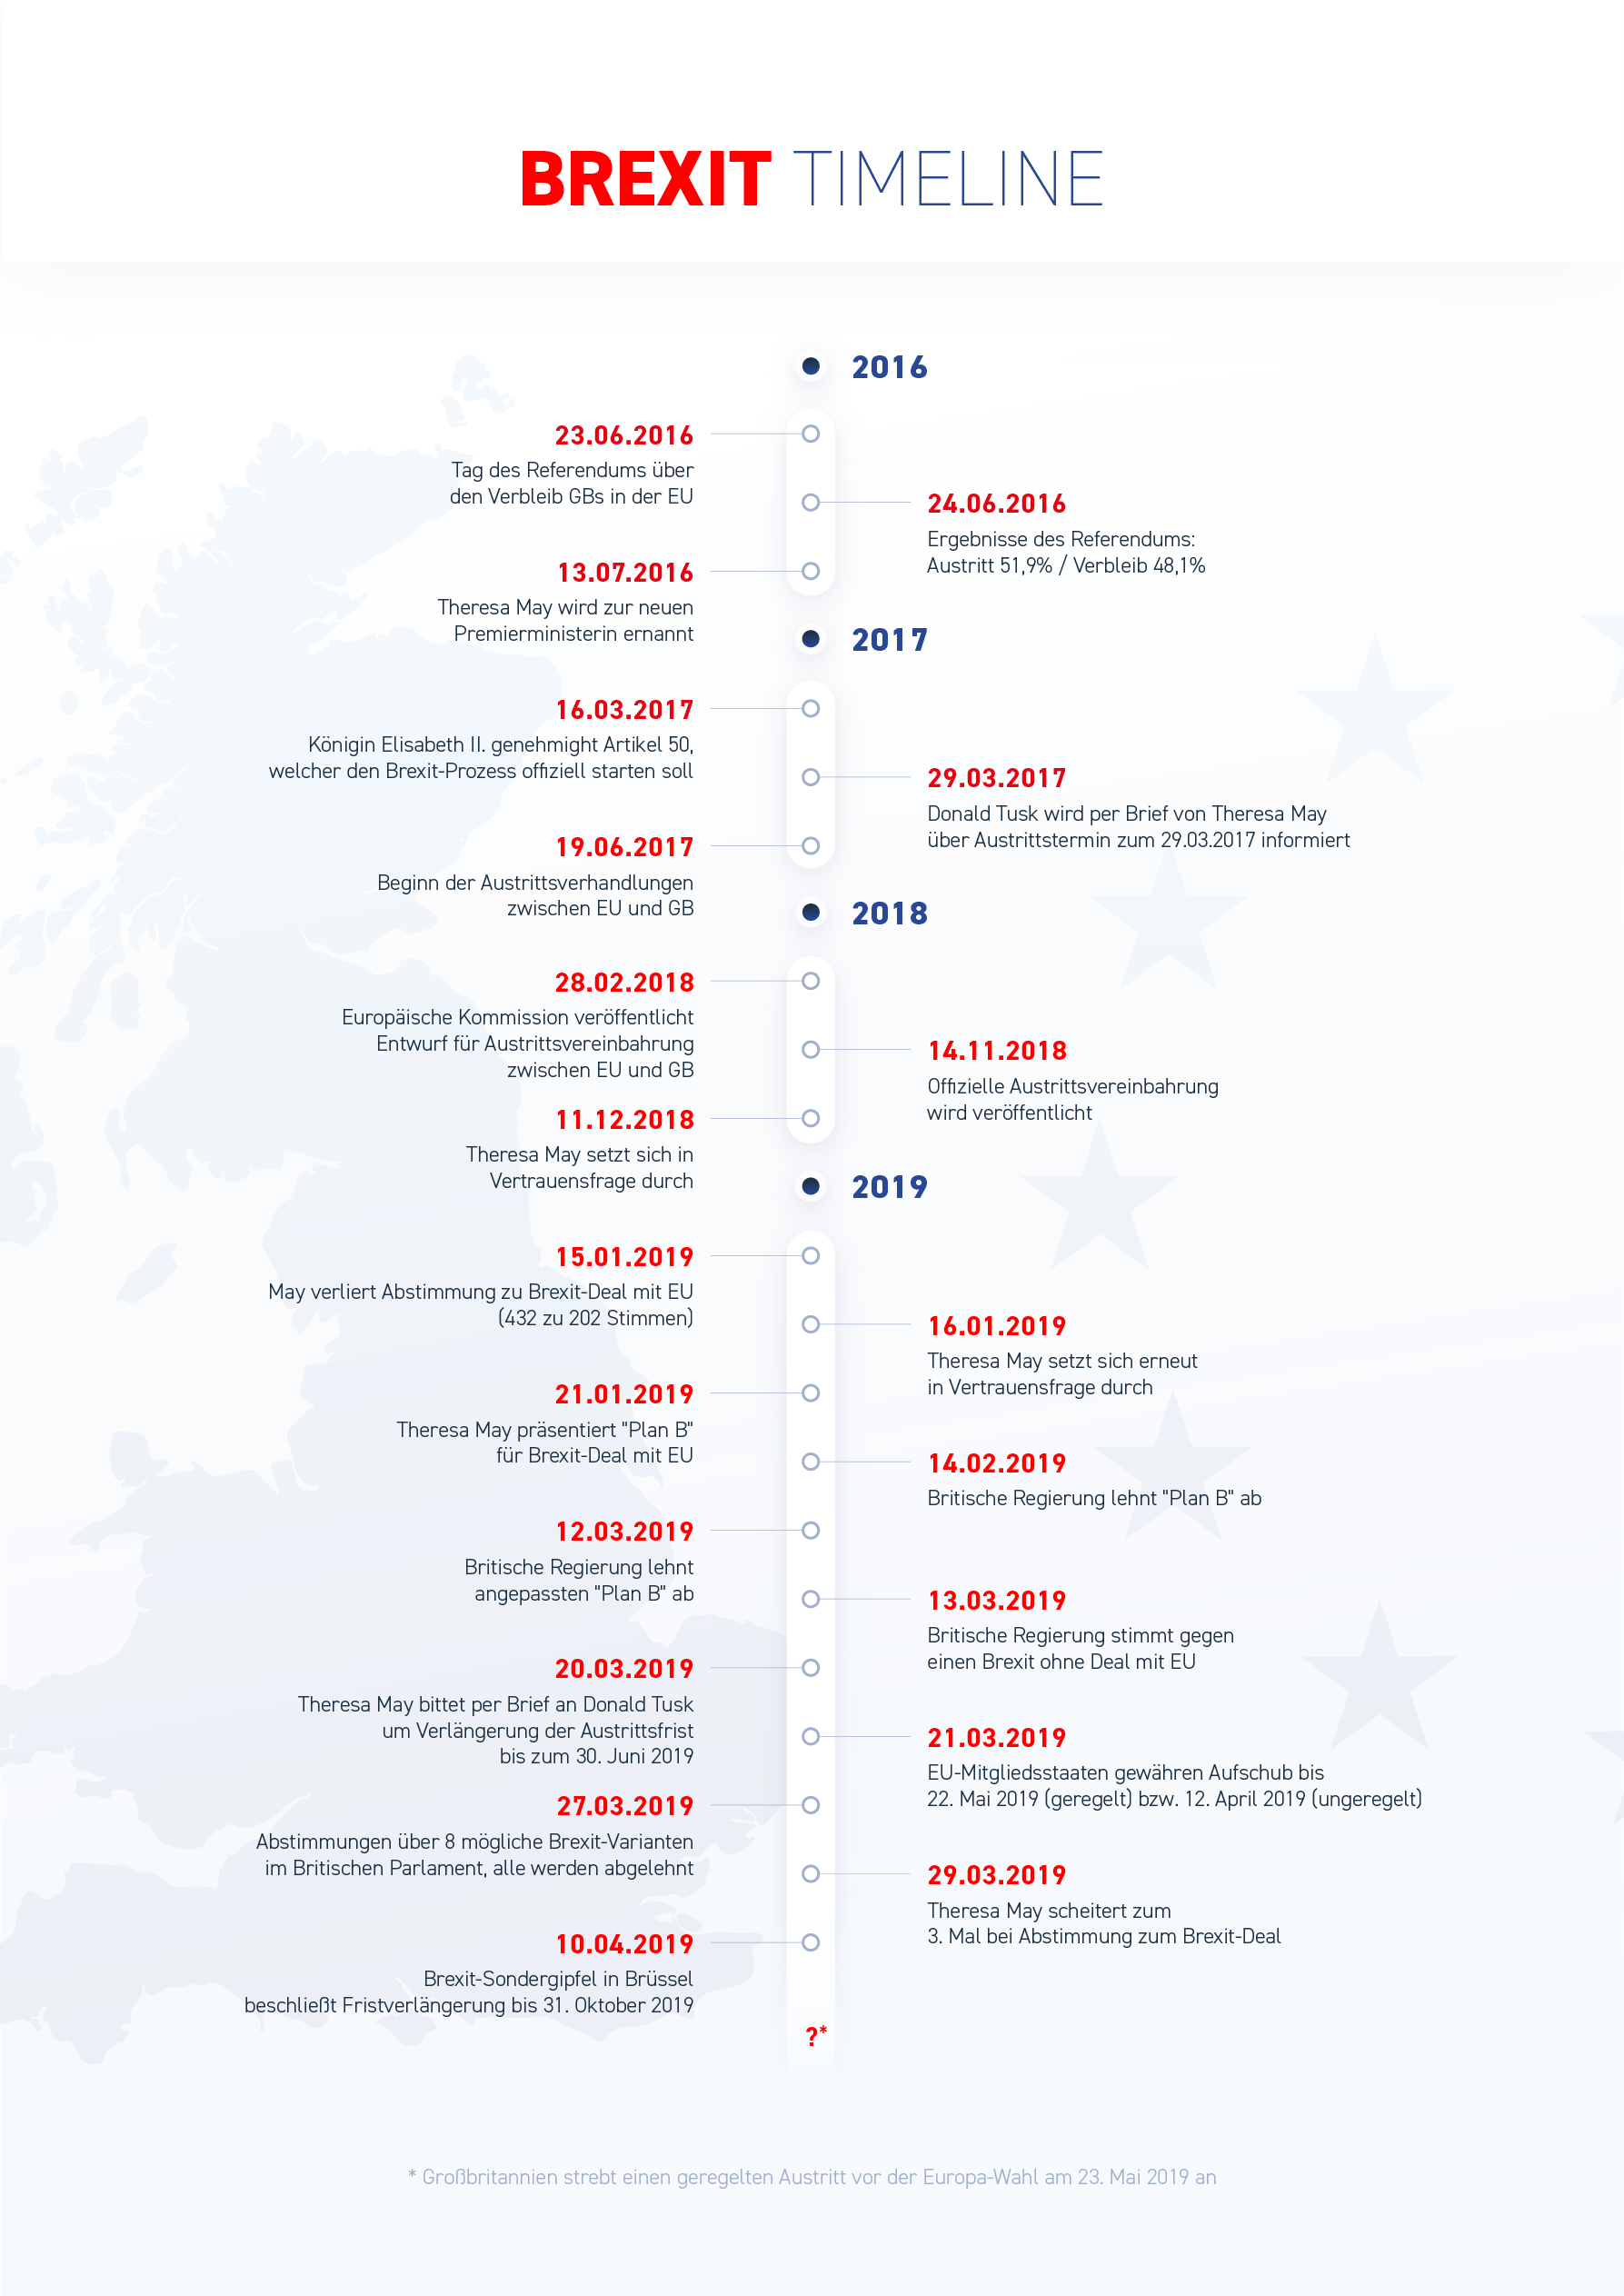 Brexit Timeline_infographic@3x